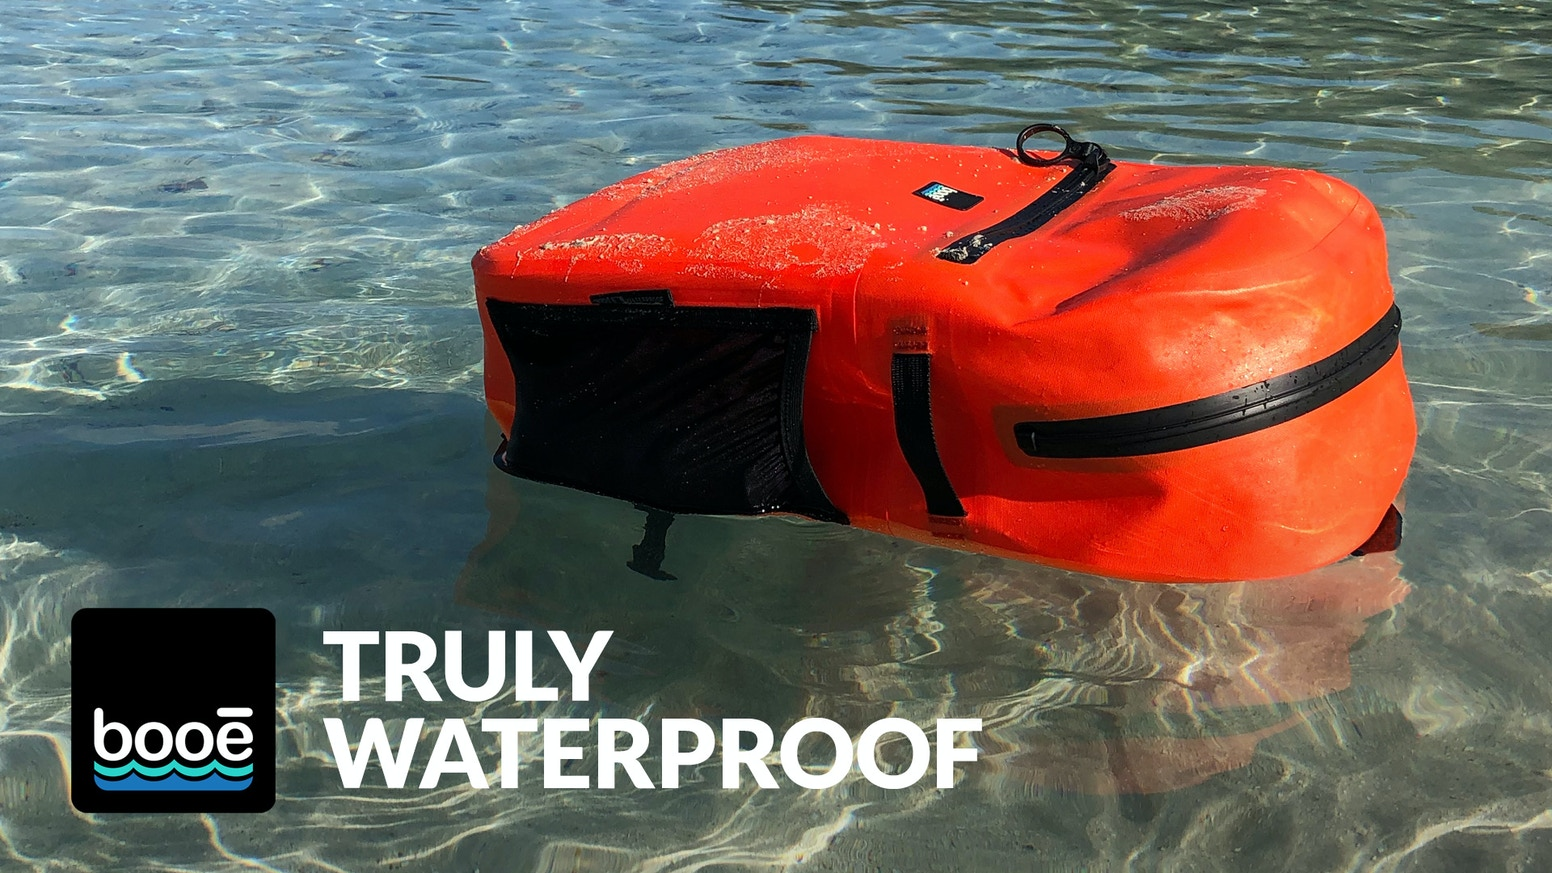 Waterproof  |  Submersible  |  Airtight  |  Floats